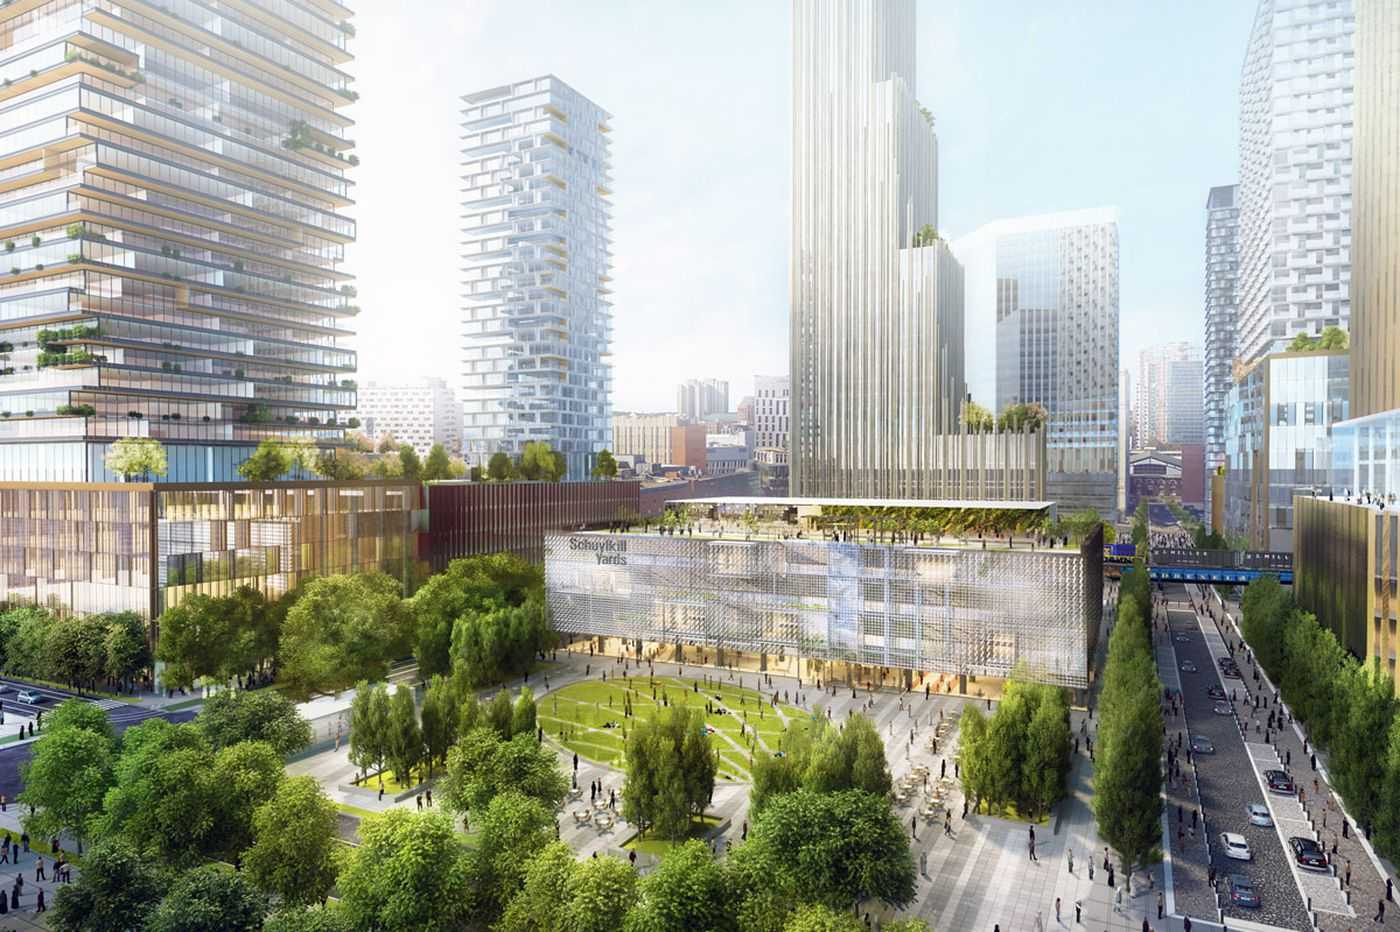 Spark Therapeutics pledges 500 new jobs in move to first project in Schuylkill Yards plan